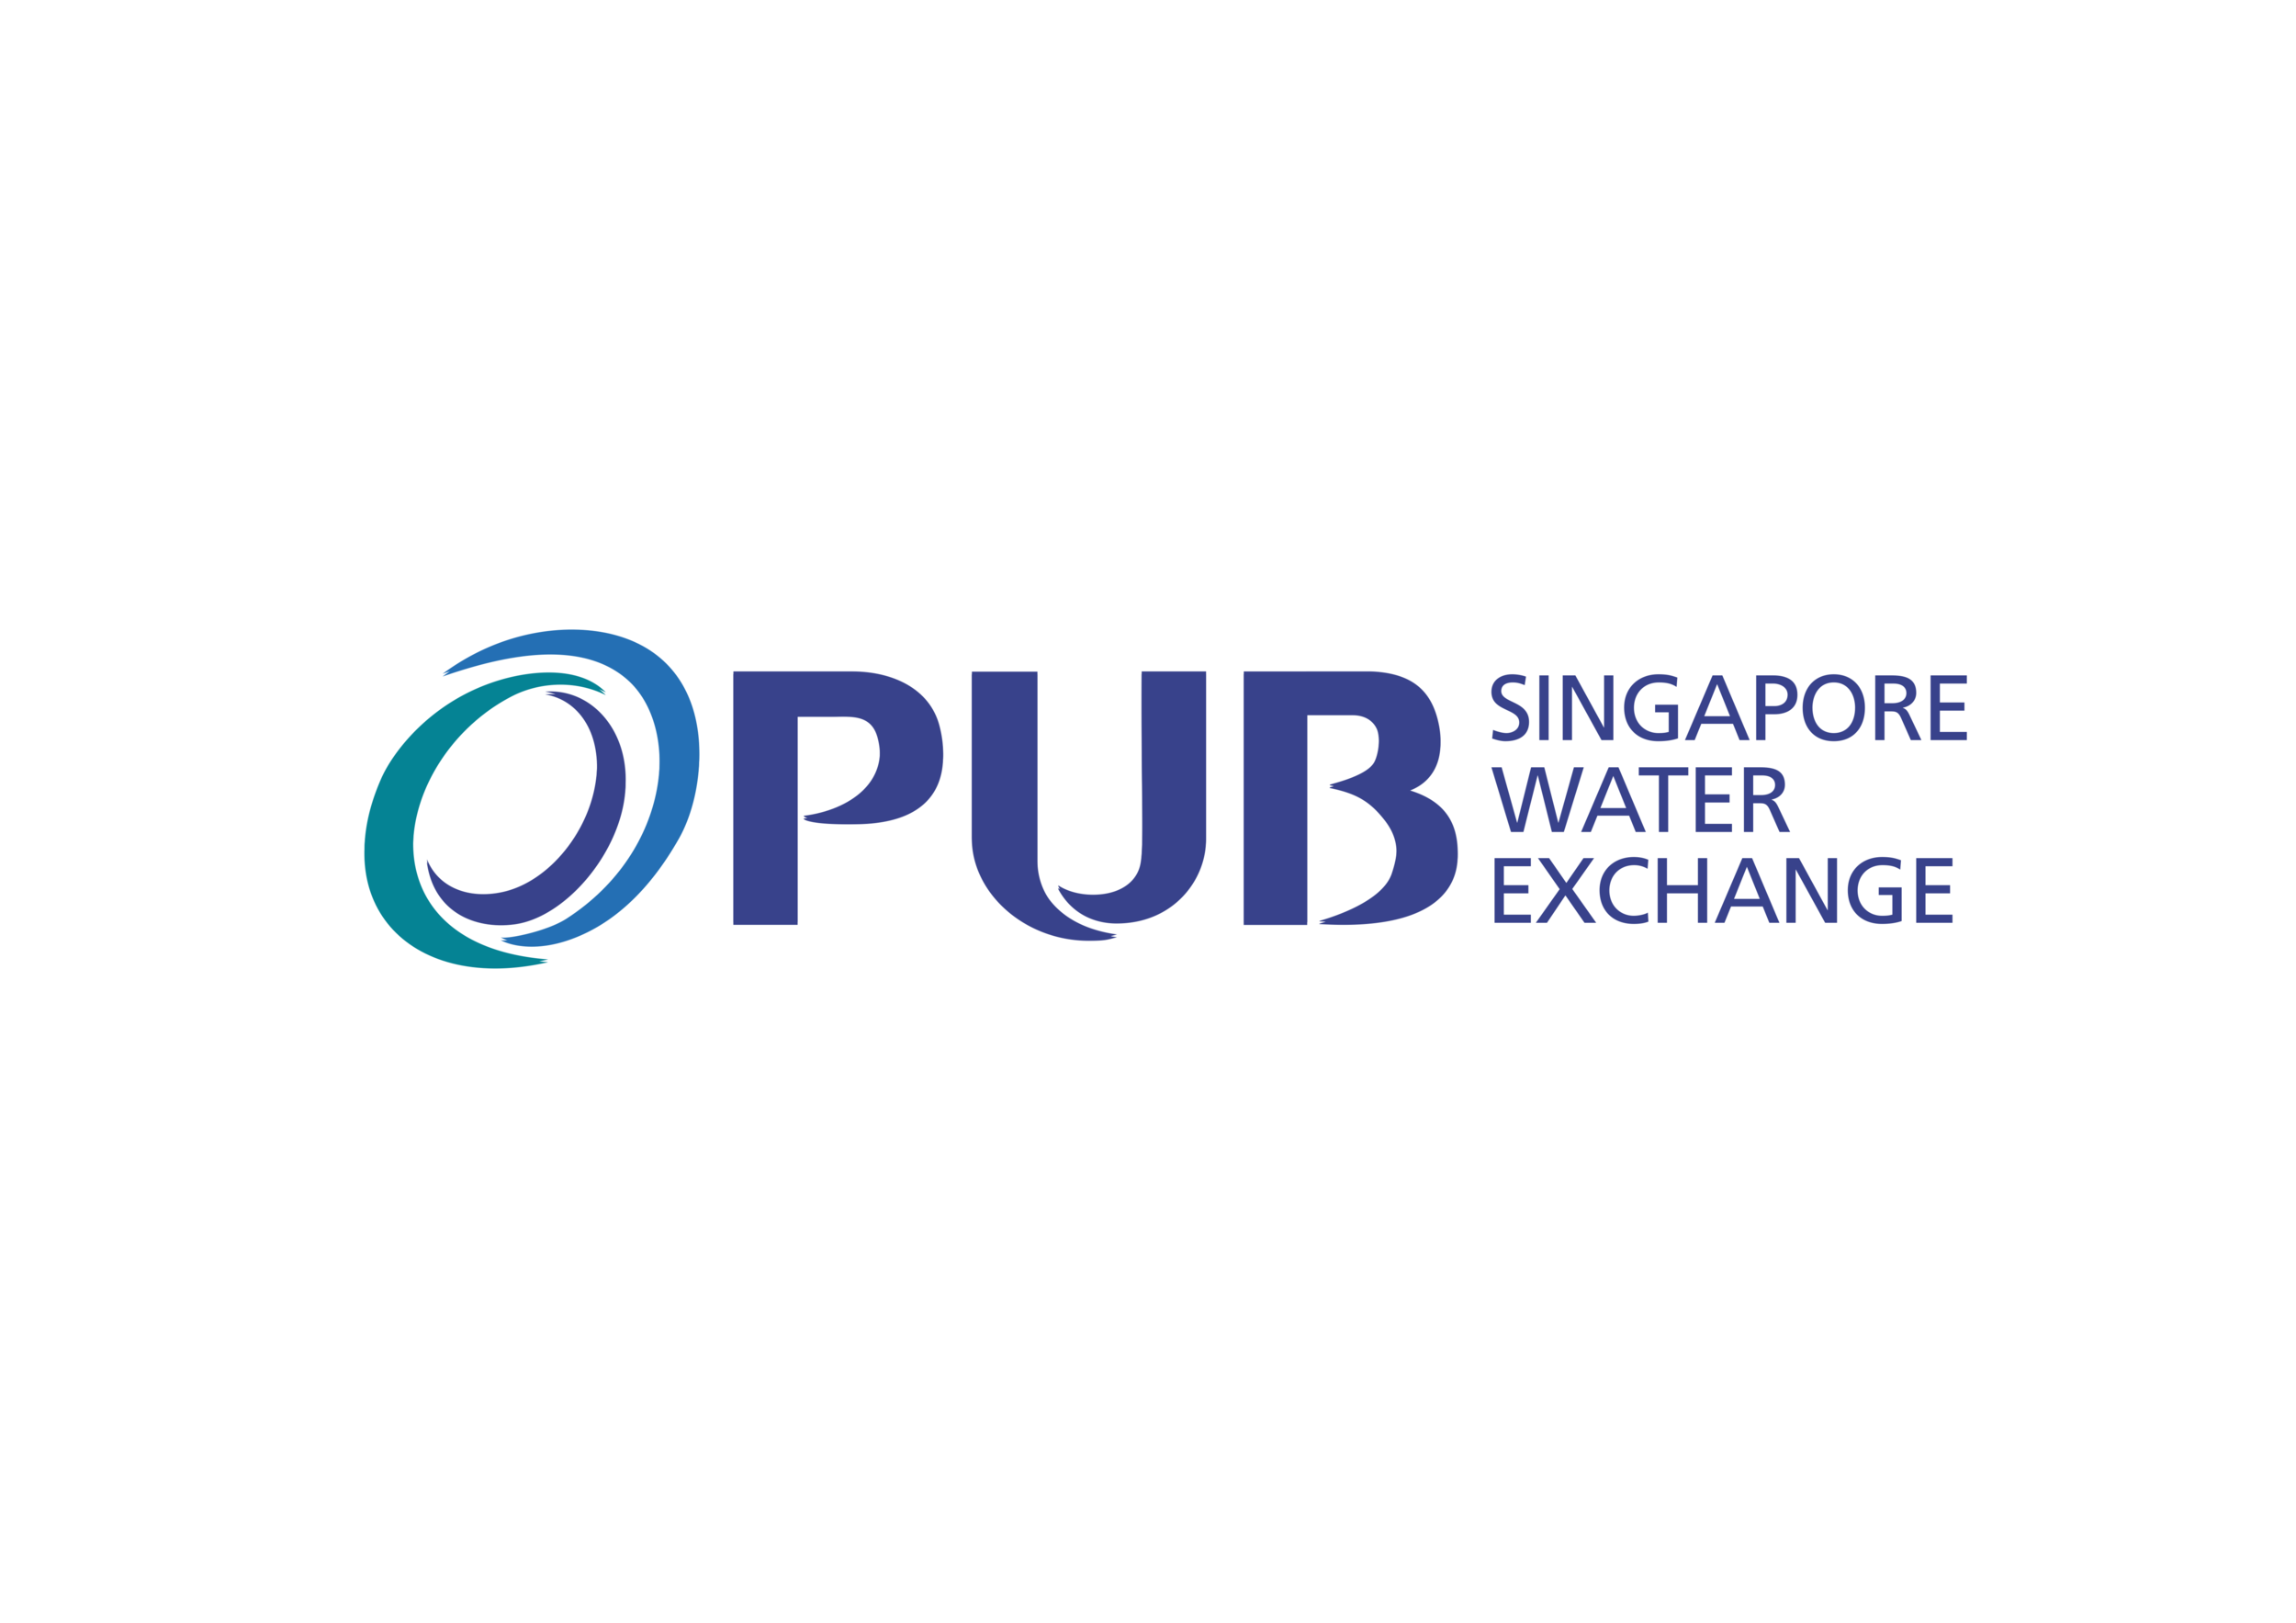 singapore-water-exchange-logo.png